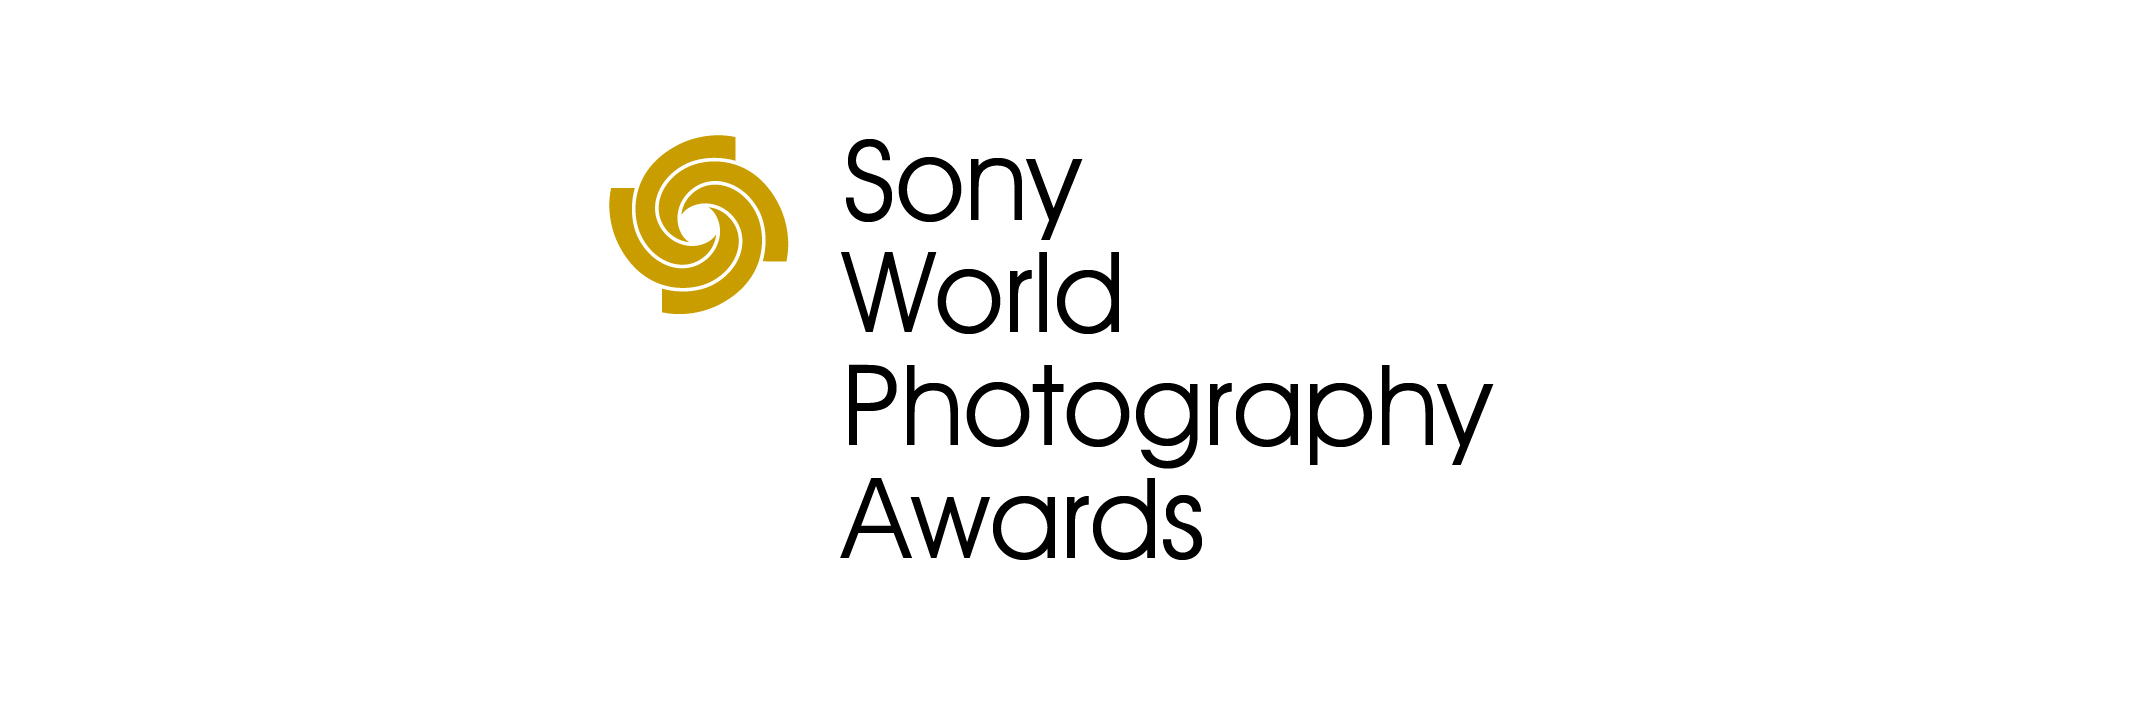 2019 Sony World Photography Awards - logo